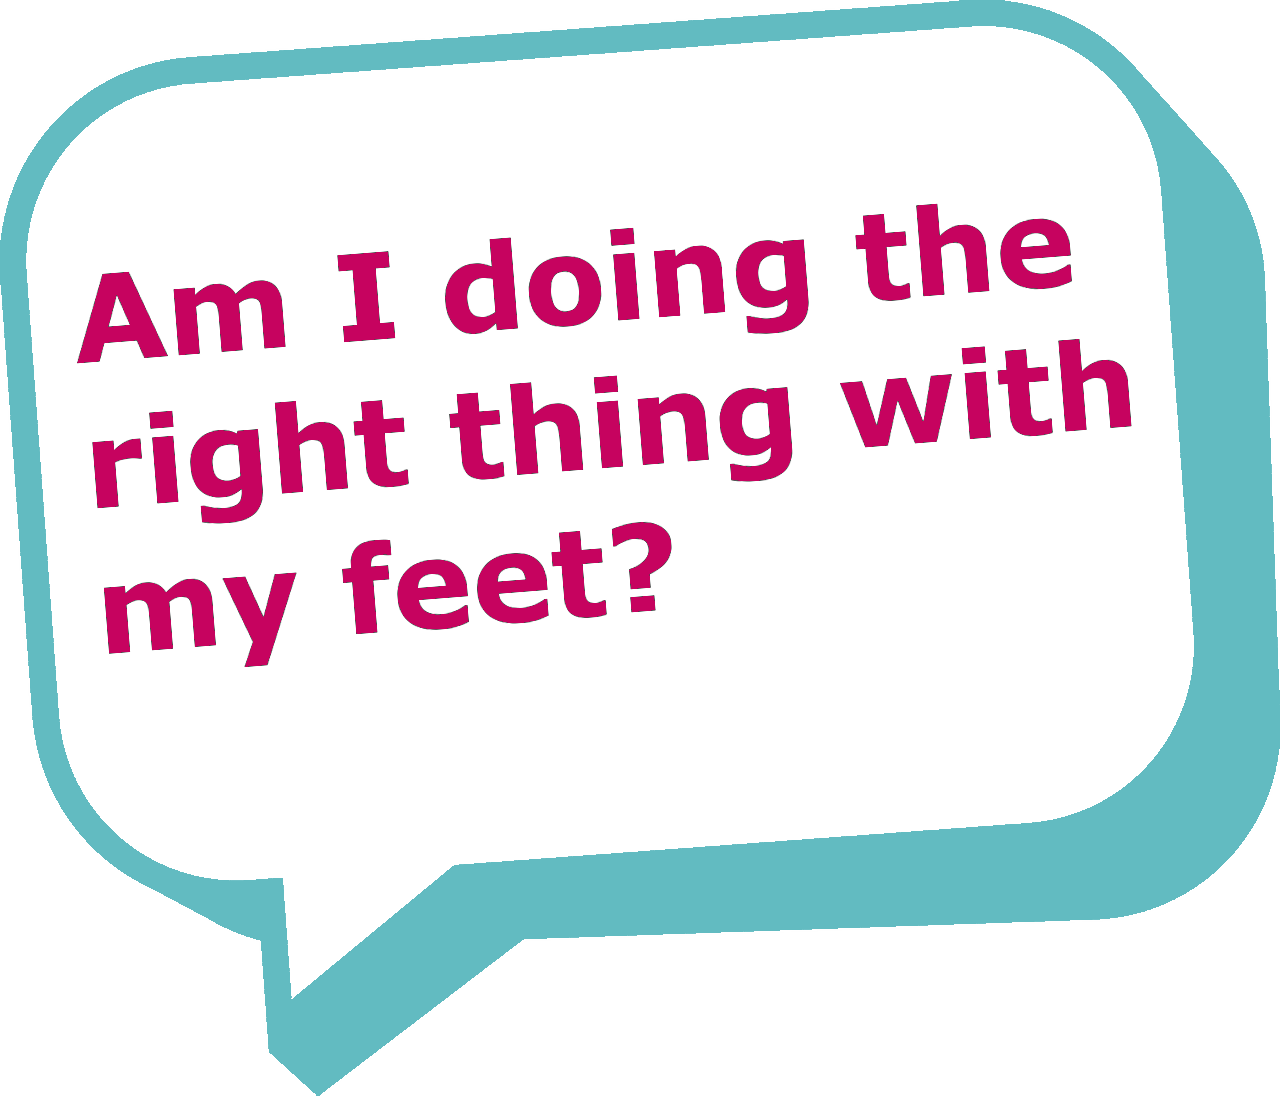 """Speech bubble saying """"Am I doing the right thing with my feet?"""""""